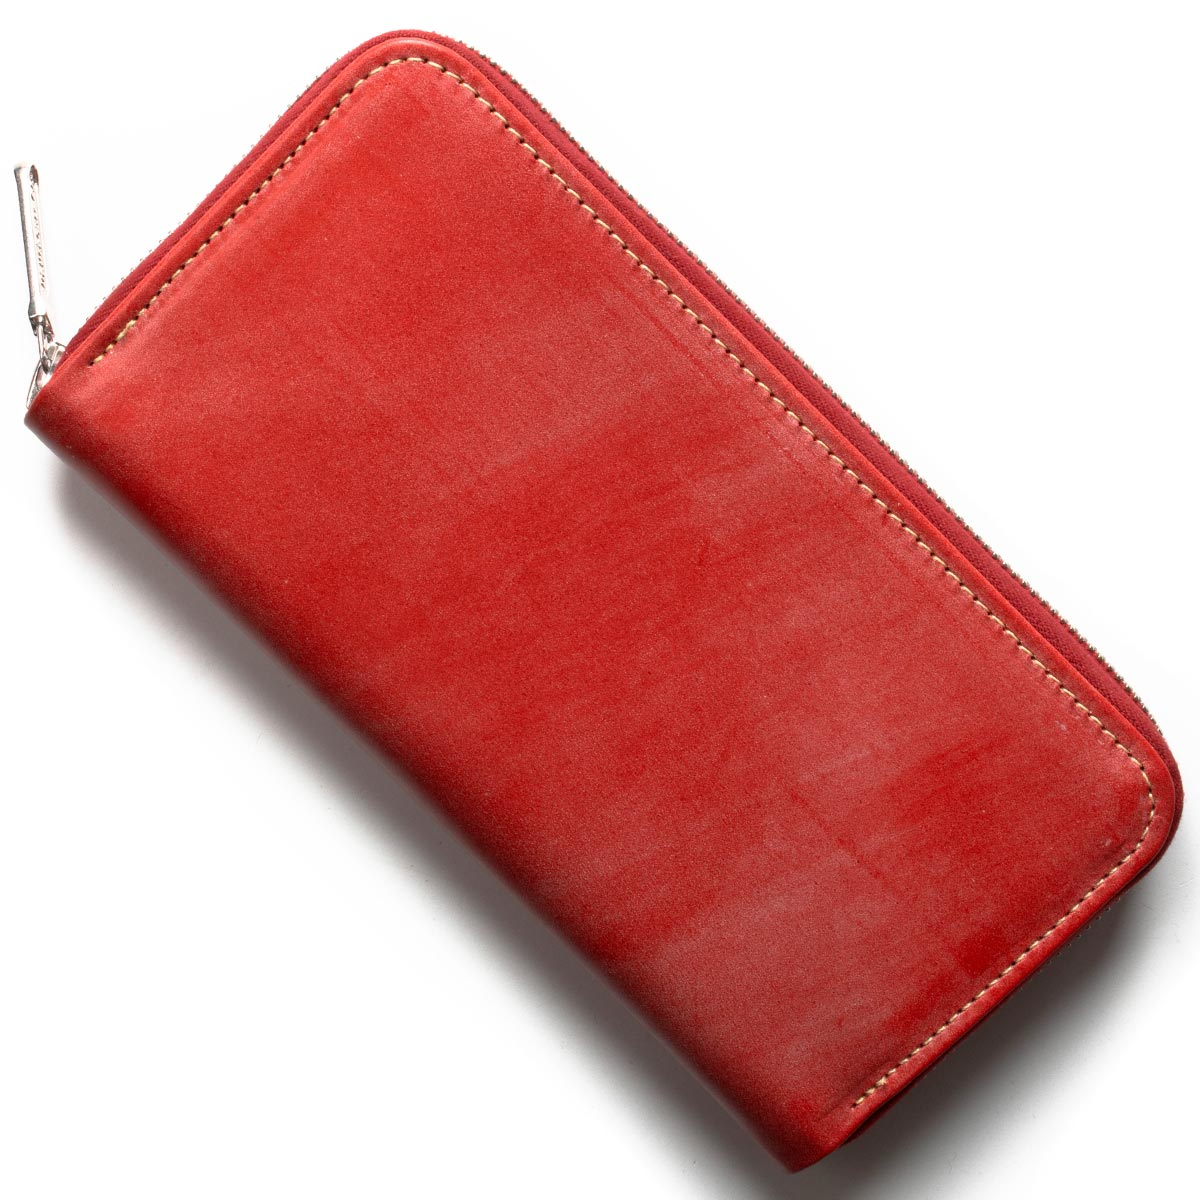 cheap for discount f4473 117a6 ホワイトハウスコックス 長財布 財布 メンズ エイジング レッド S2722 RED WHITEHOUSE COX